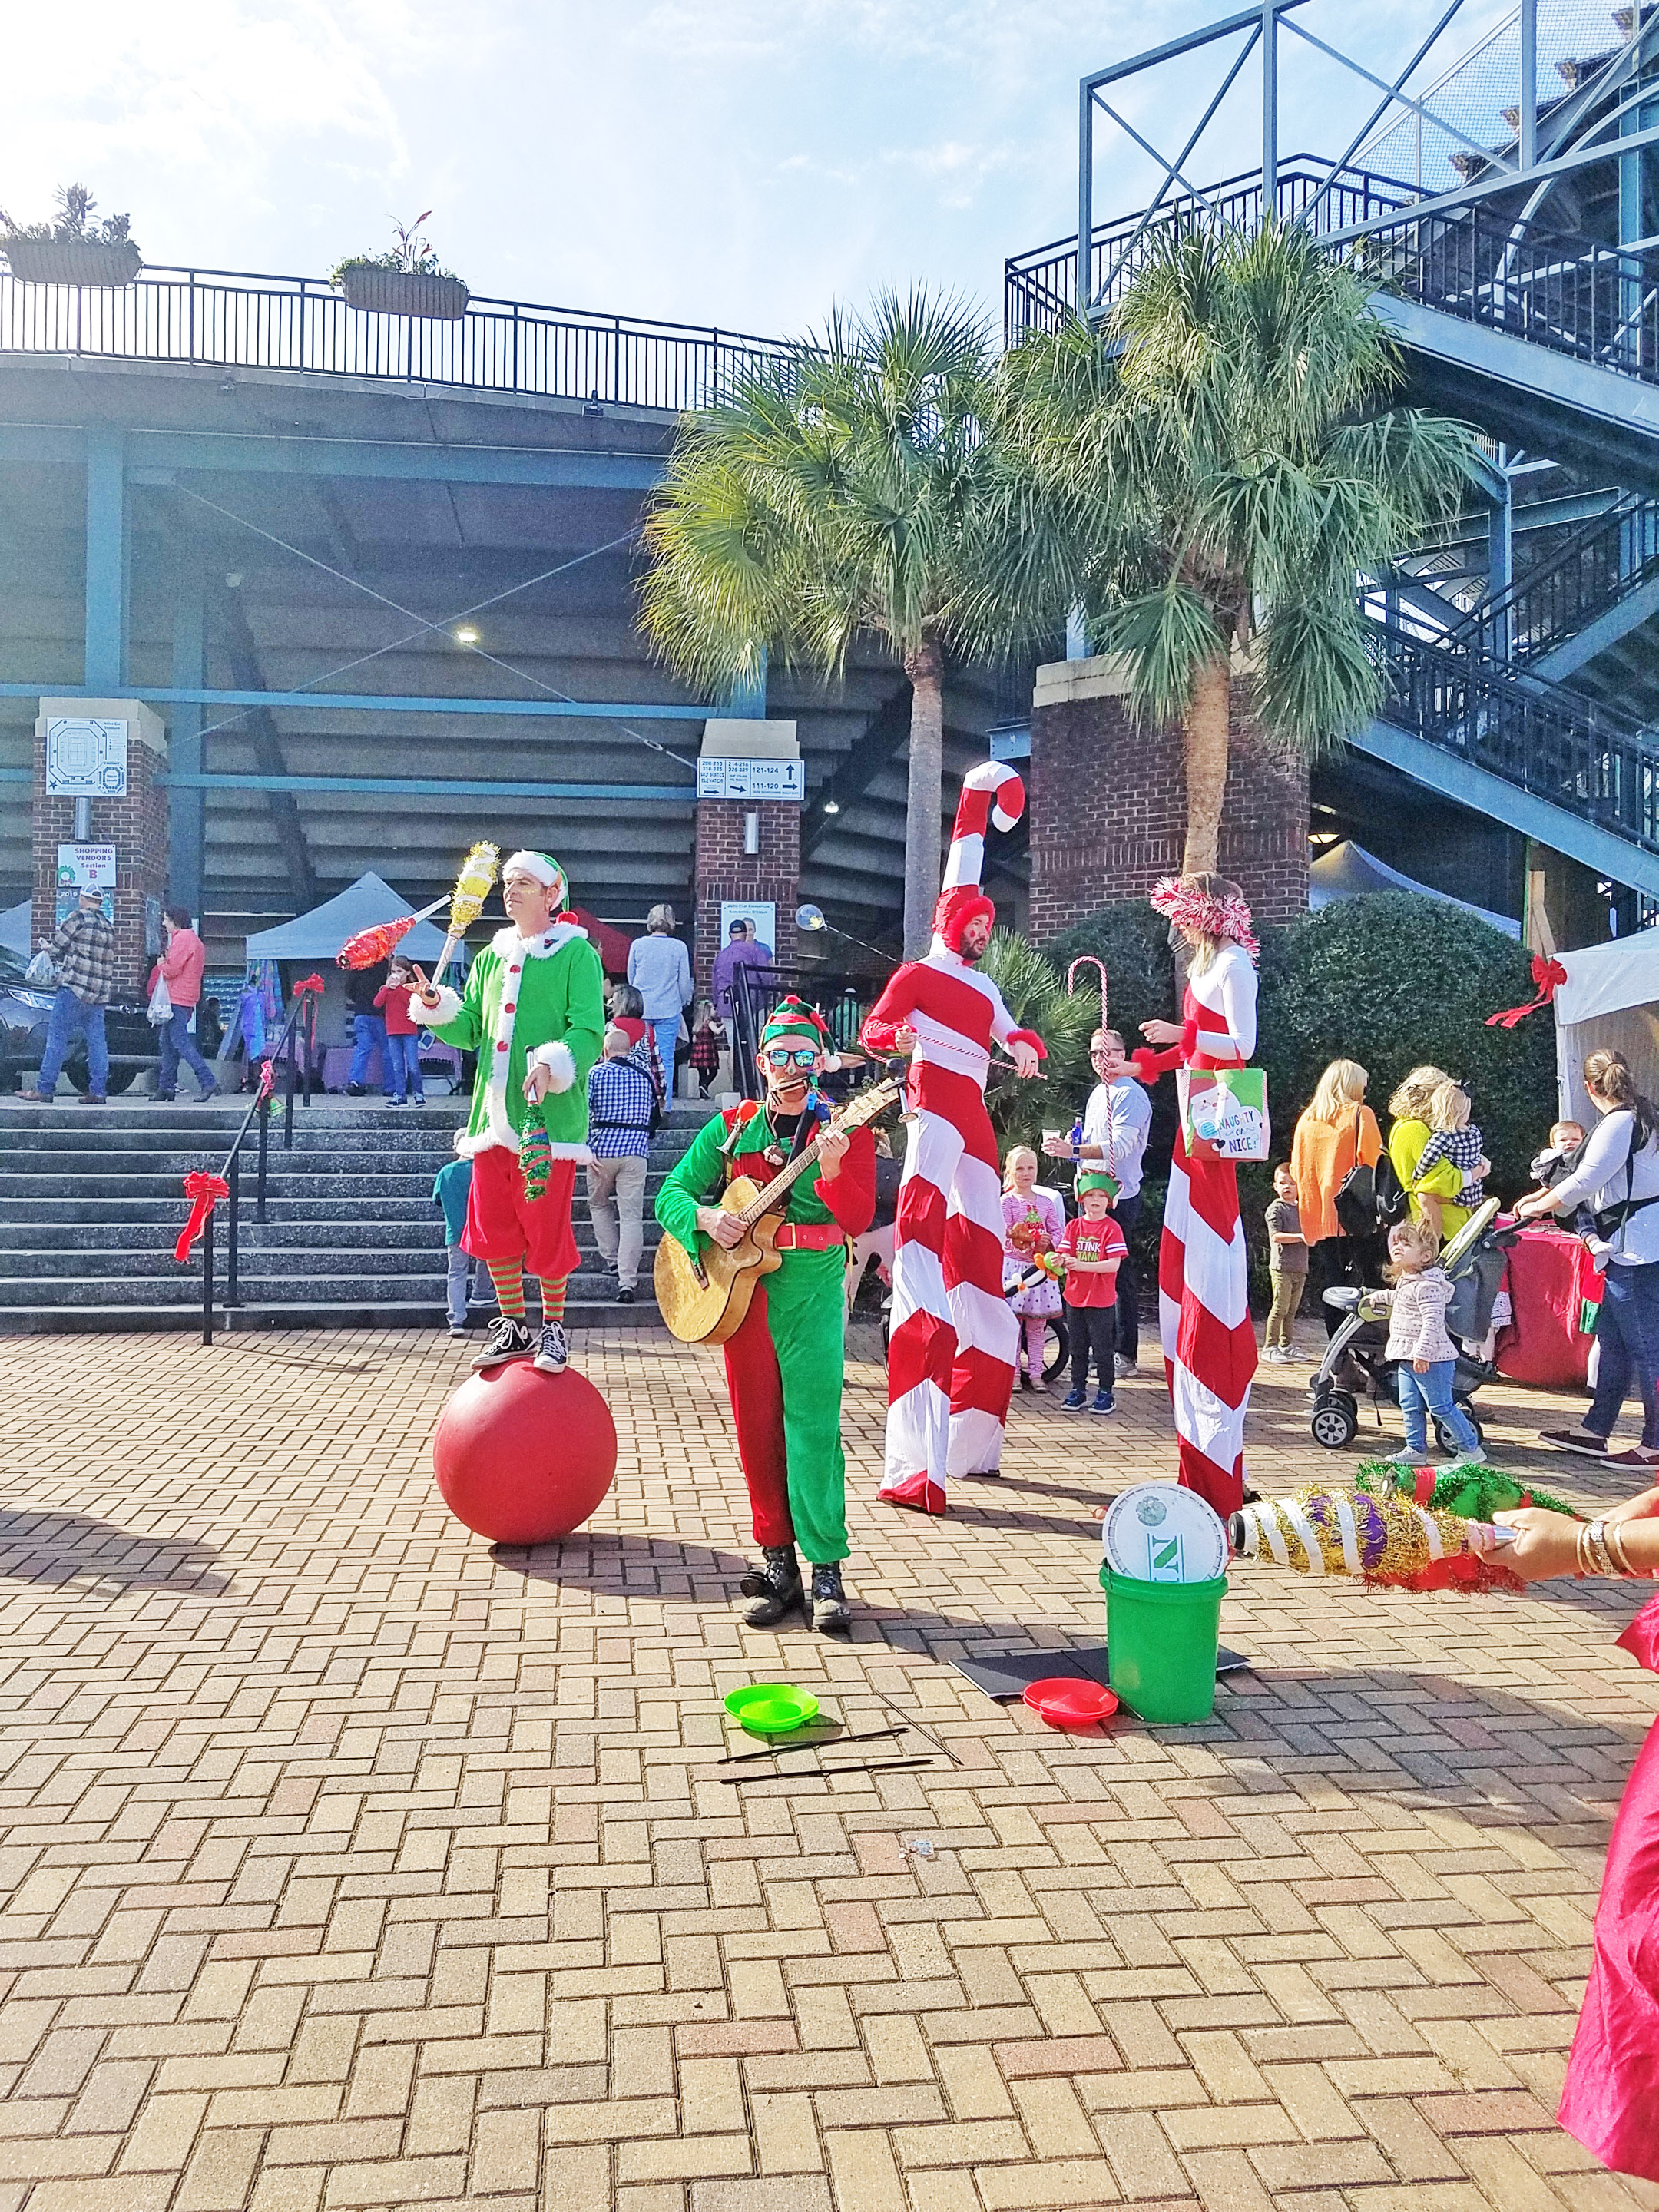 This unique performance troupe, Good Clean Fun, offered up festive holiday entertainment for the crowd at Volvo Car Stadium.